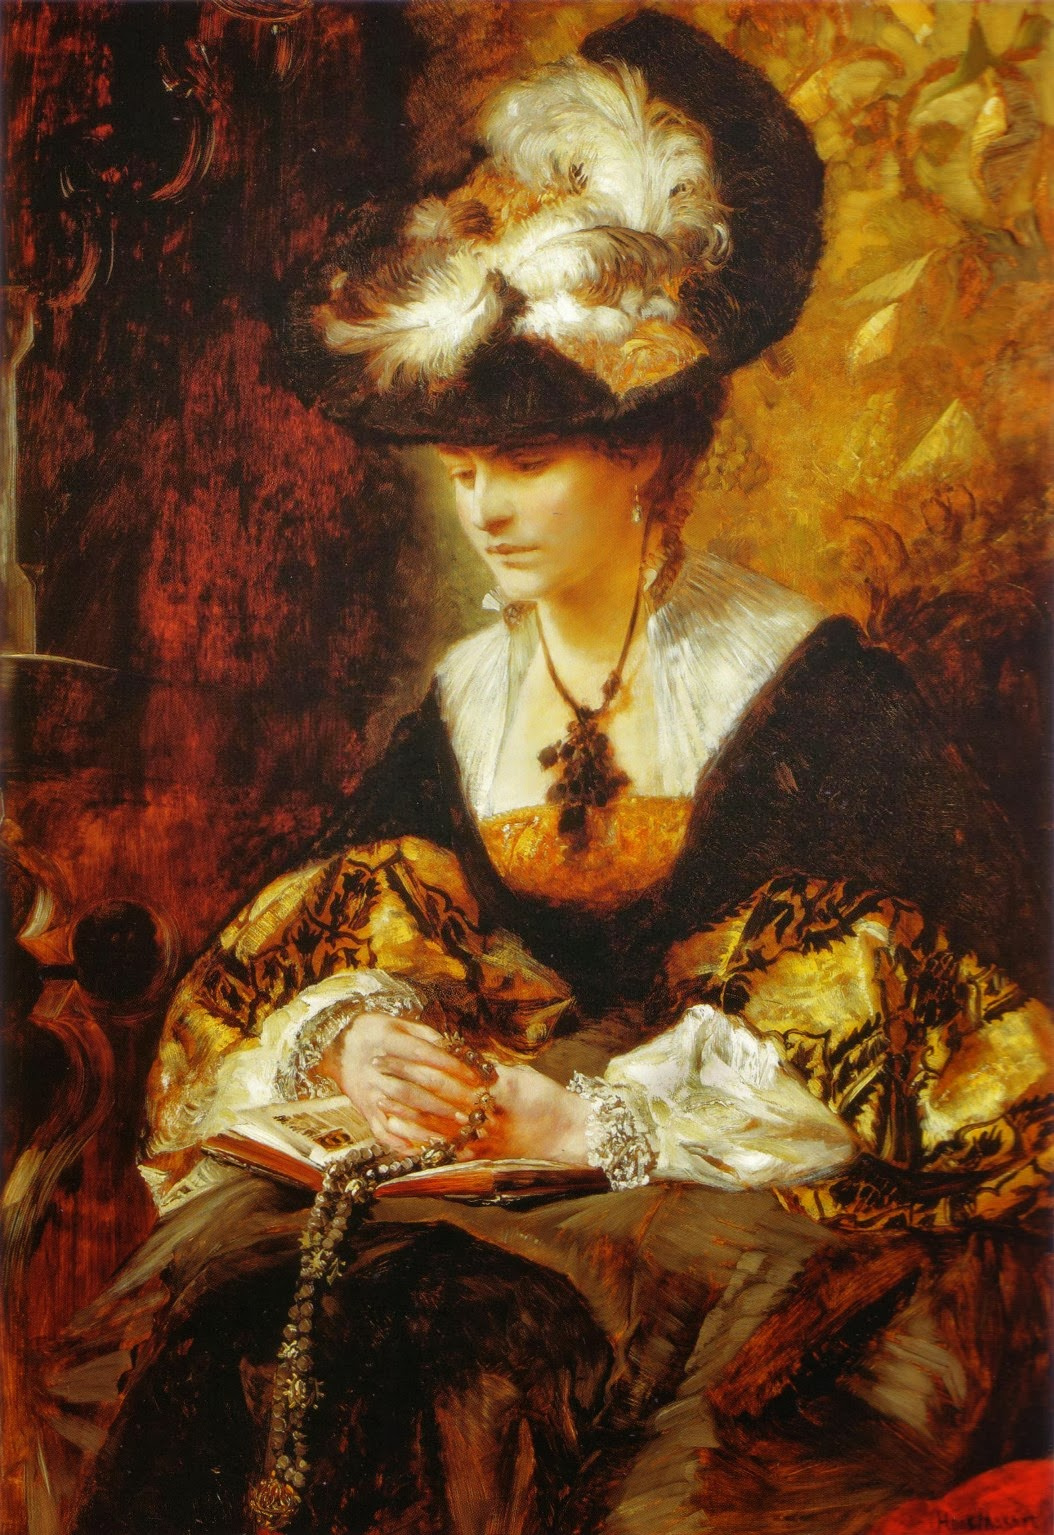 Hans Makart. Portrait of Countess Palffy